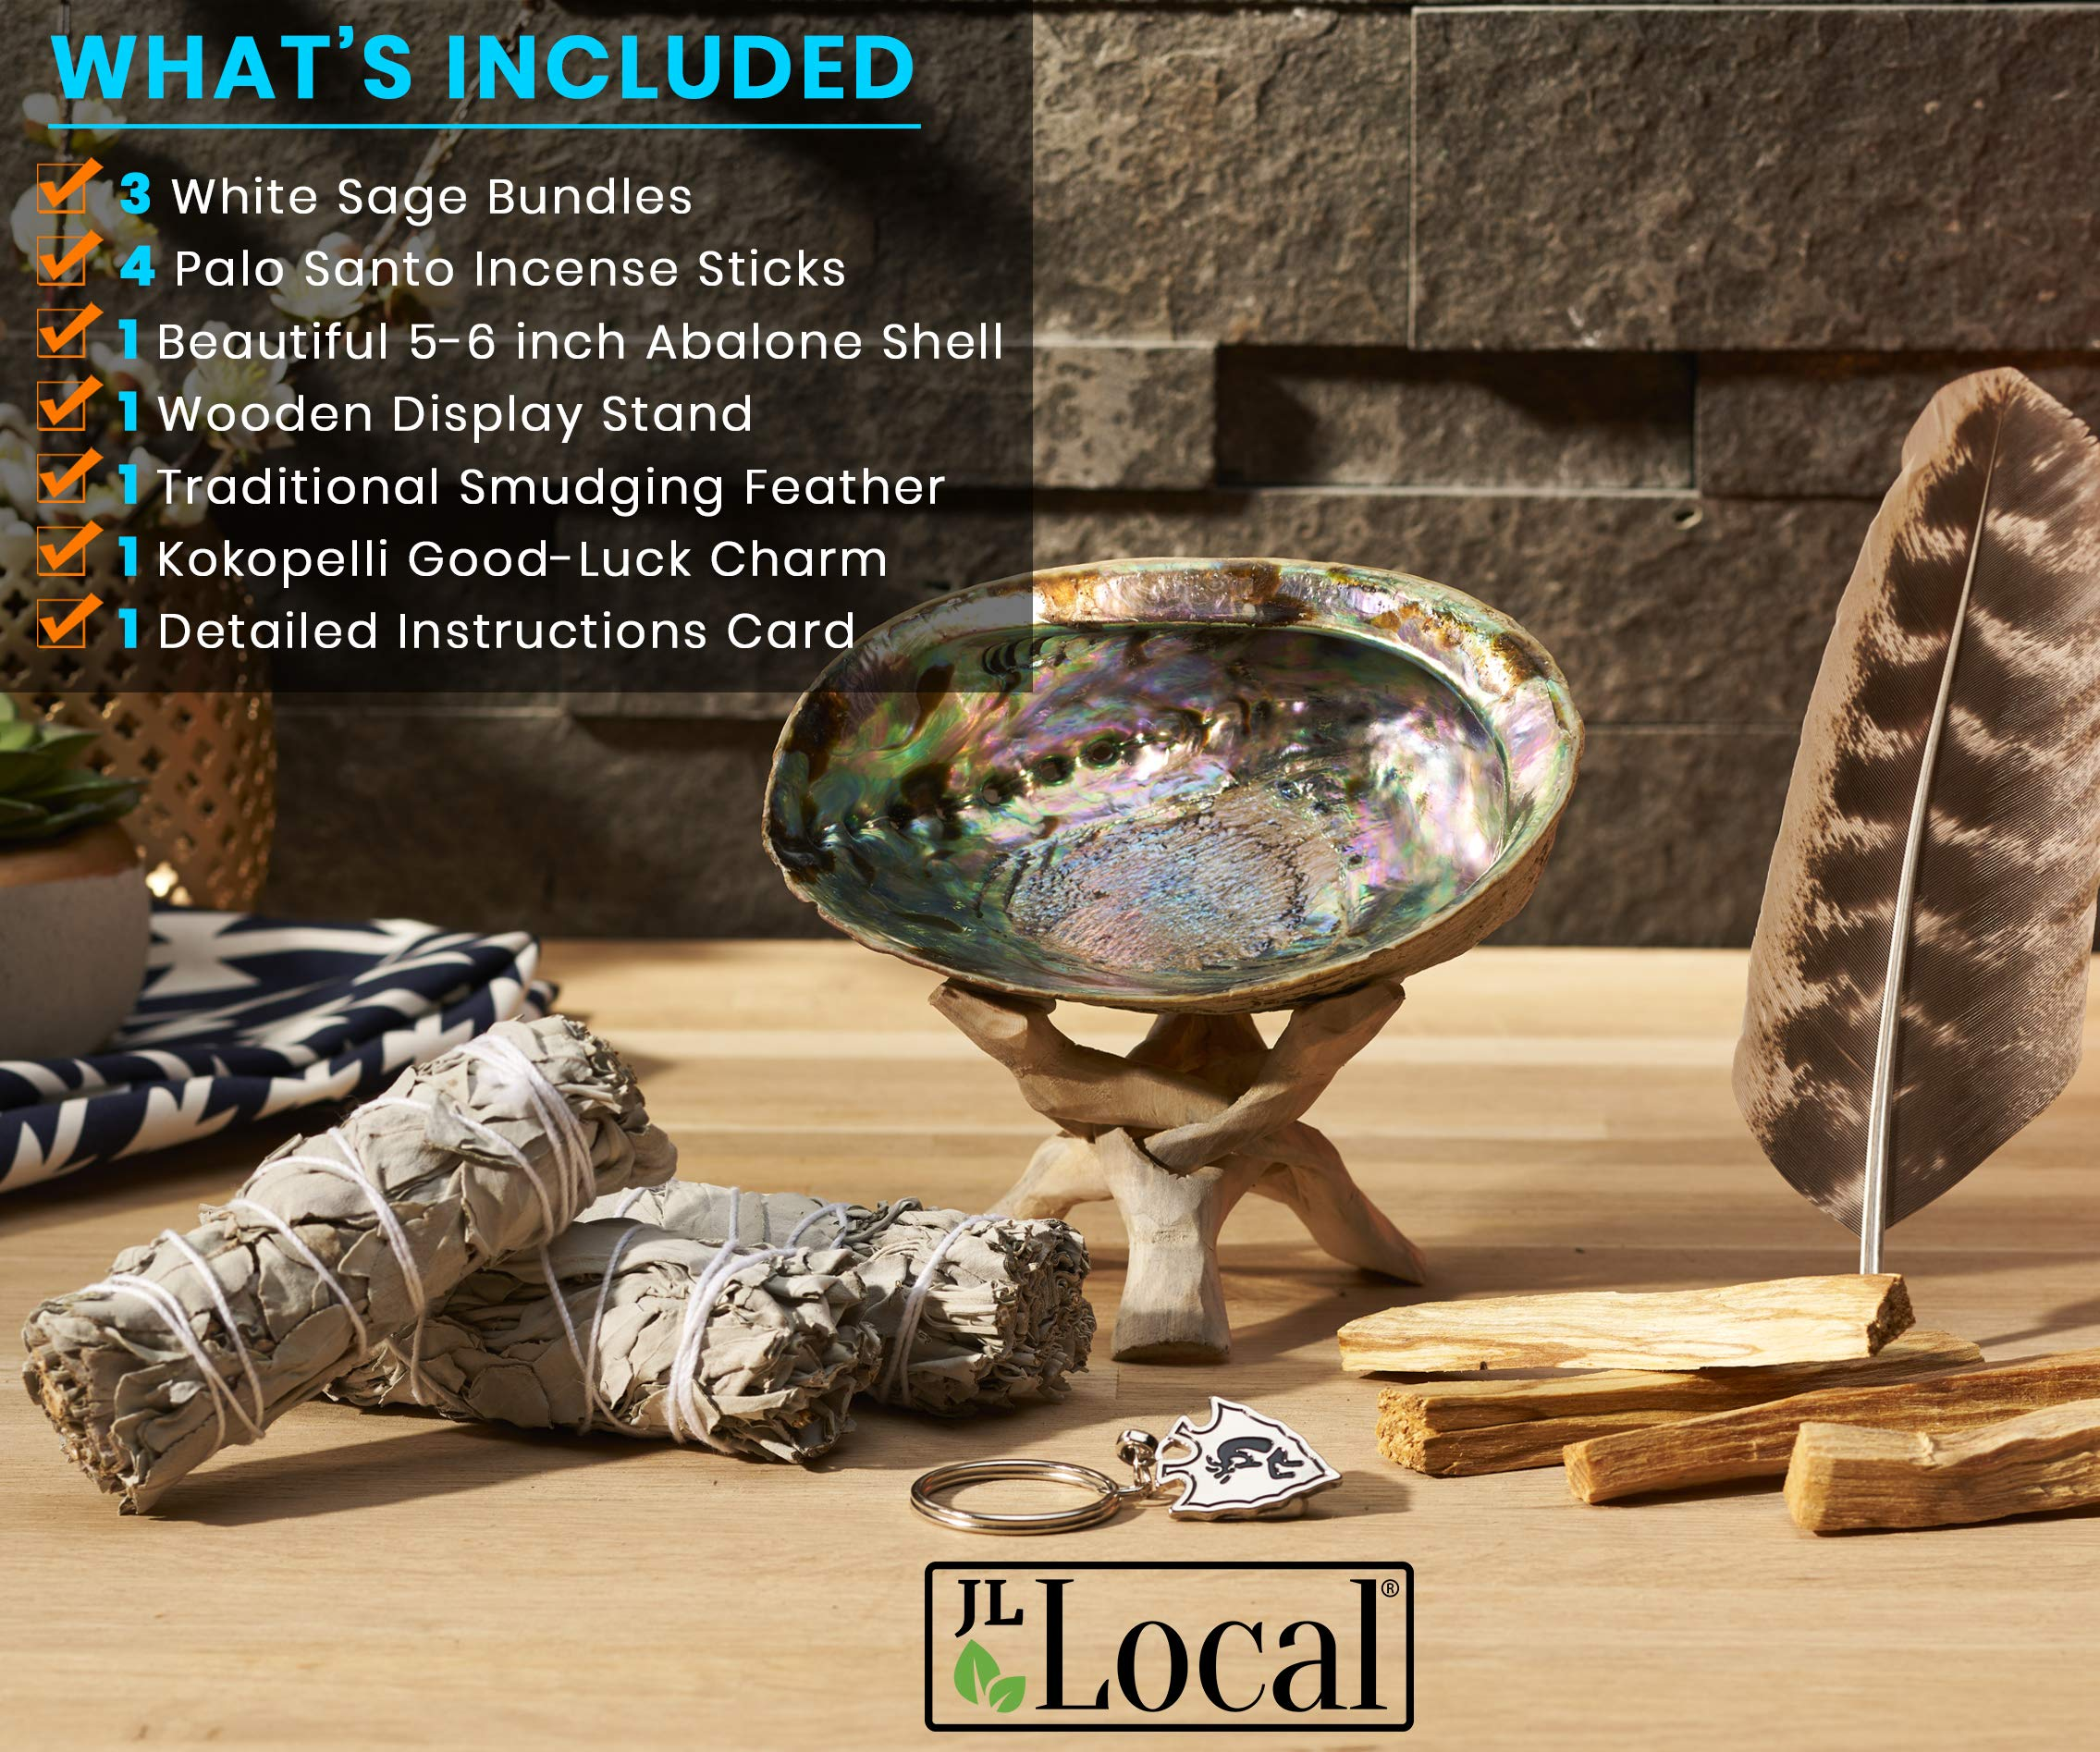 JL Local Smudge Kit - Sage, Palo Santo, Abalone Shell, Feather + More! Yoga, Meditating, Purify, Cleanse by JL Local (Image #2)